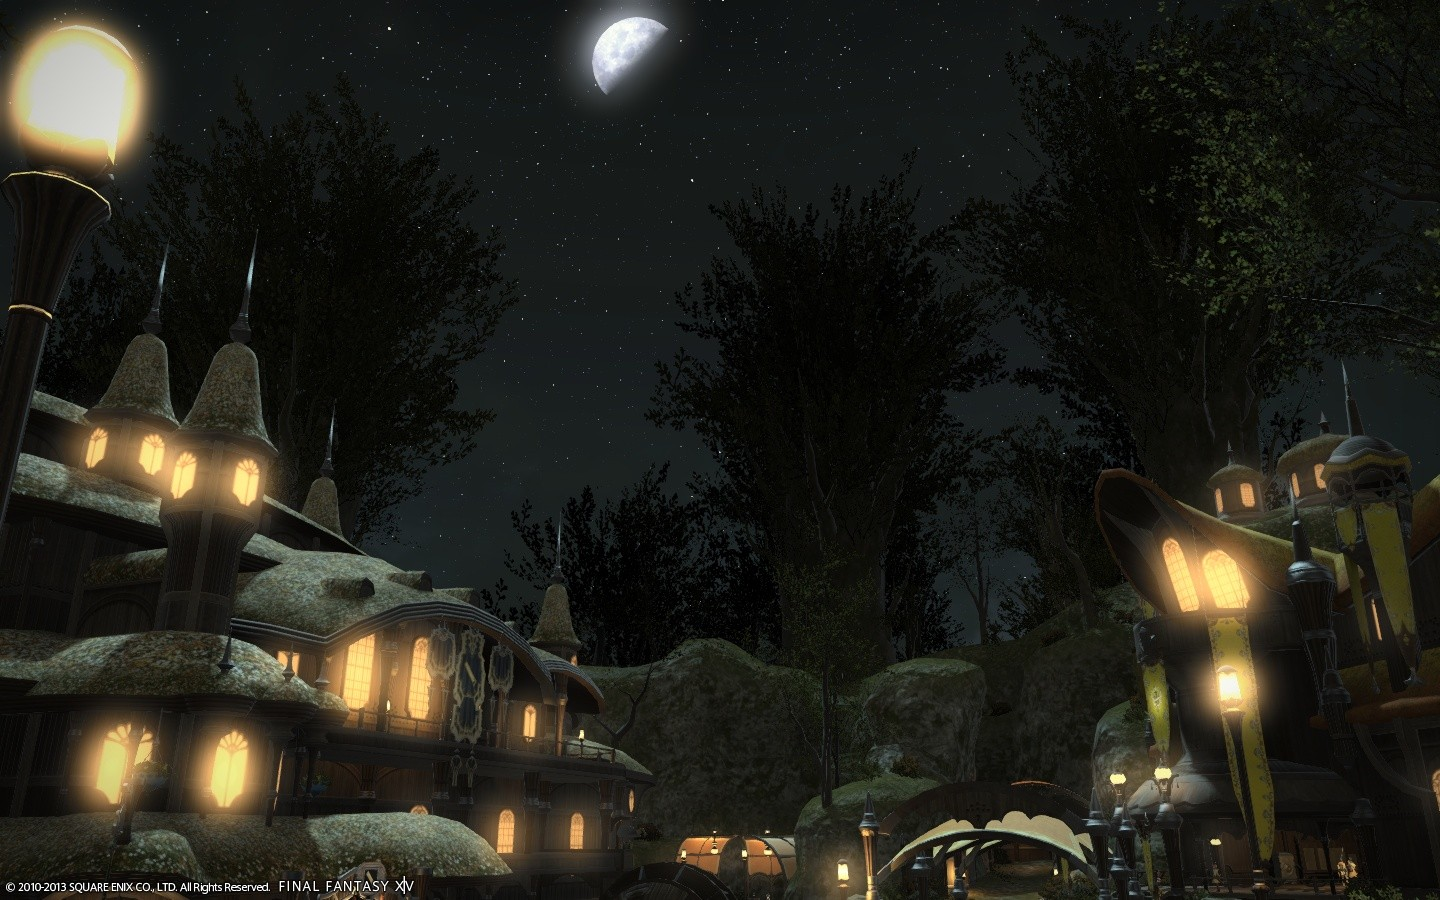 Final Fantasy XIV: A Realm Reborn - City at Night